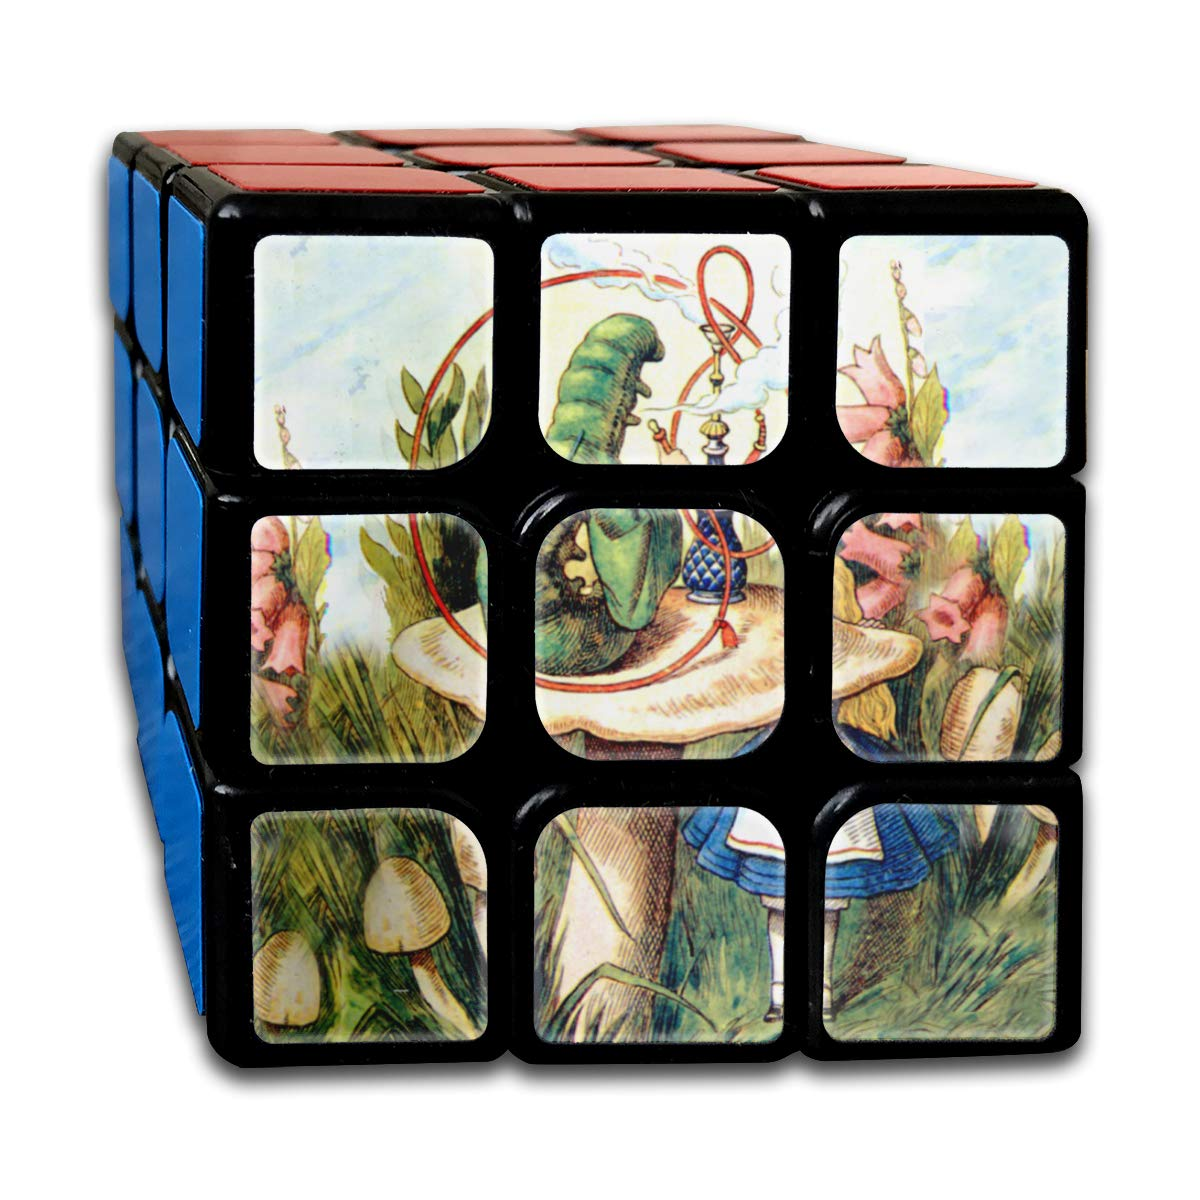 Rubiks Cube by DAIYU Variety Alice and The in Wonderland 3x3 Smooth Magic Square Puzzle Game Brain Training Game for Adults Kids